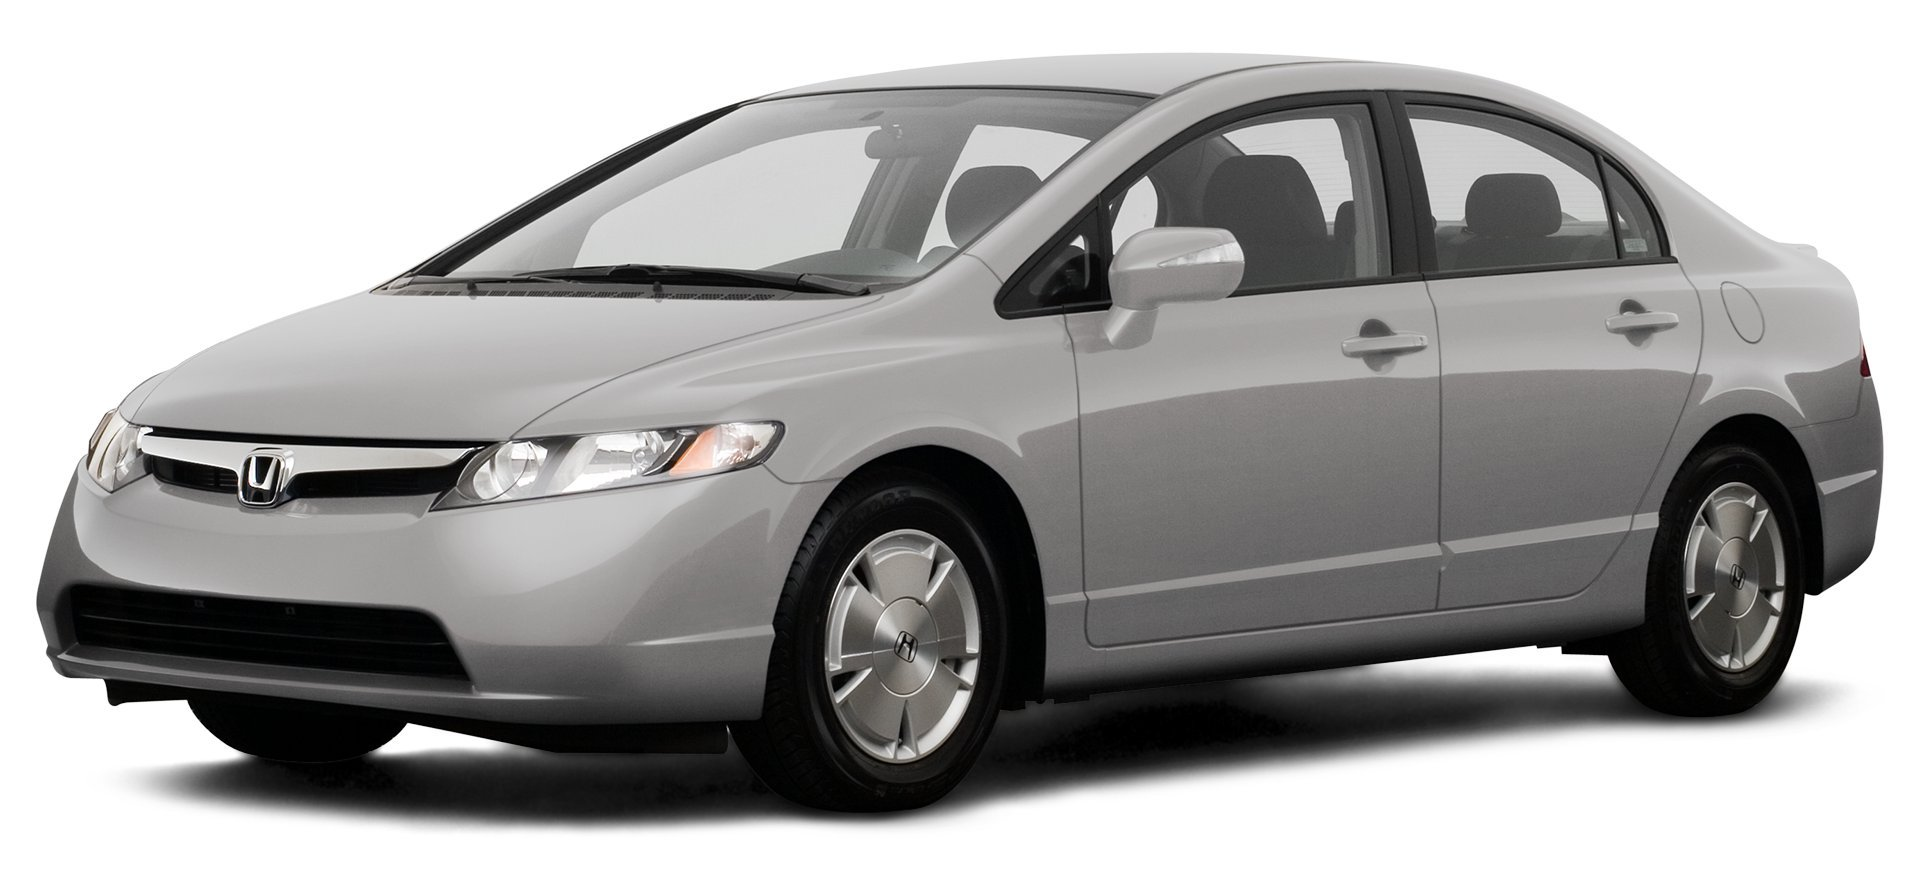 2008 honda civic reviews images and specs. Black Bedroom Furniture Sets. Home Design Ideas